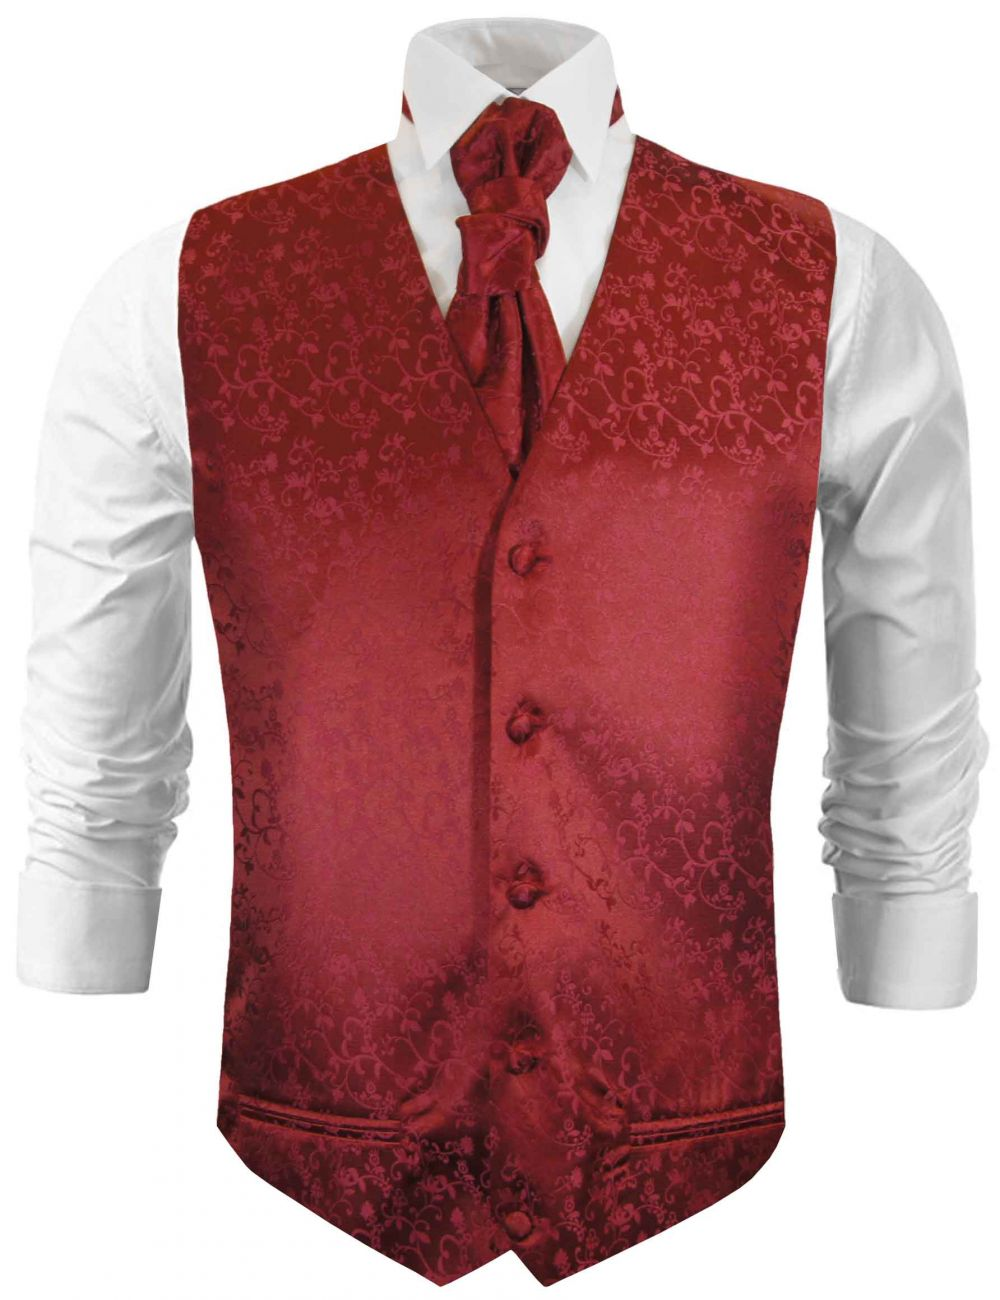 Burgundy red wedding vest floral maroon waistcoat with cravat